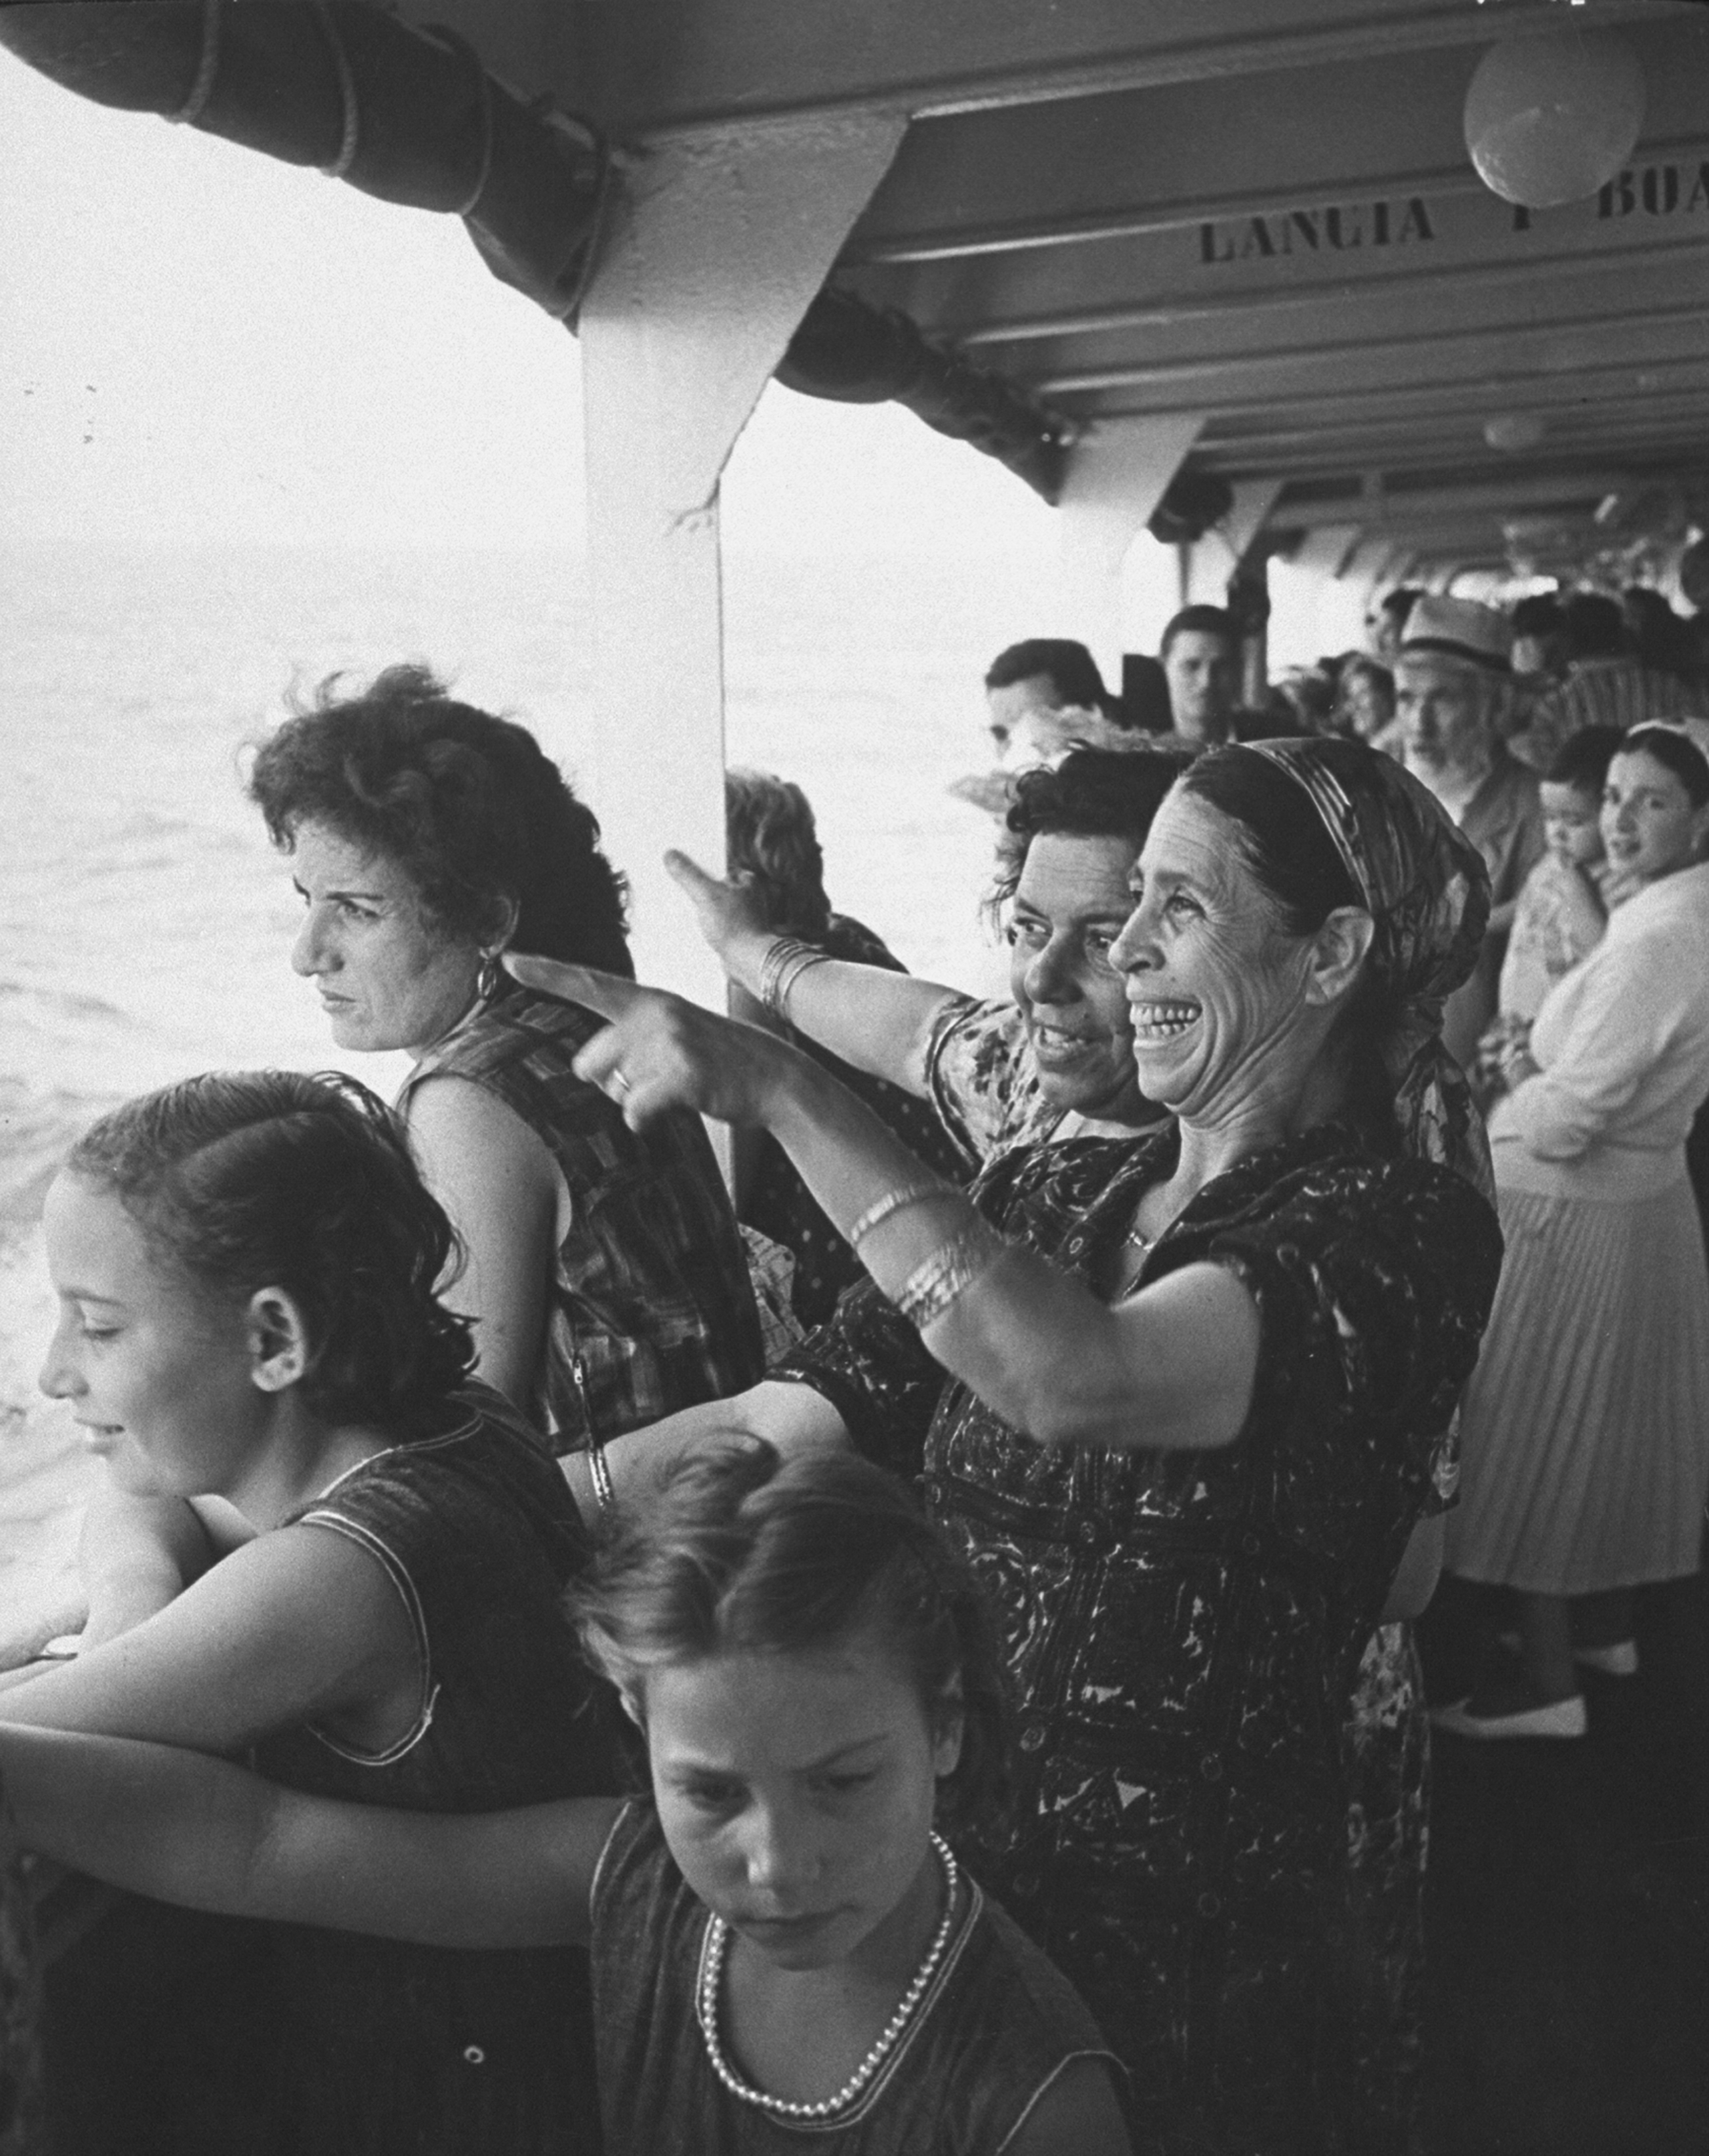 Enthused immigrants from Morocco arriving at Haifa via boat, 1962.